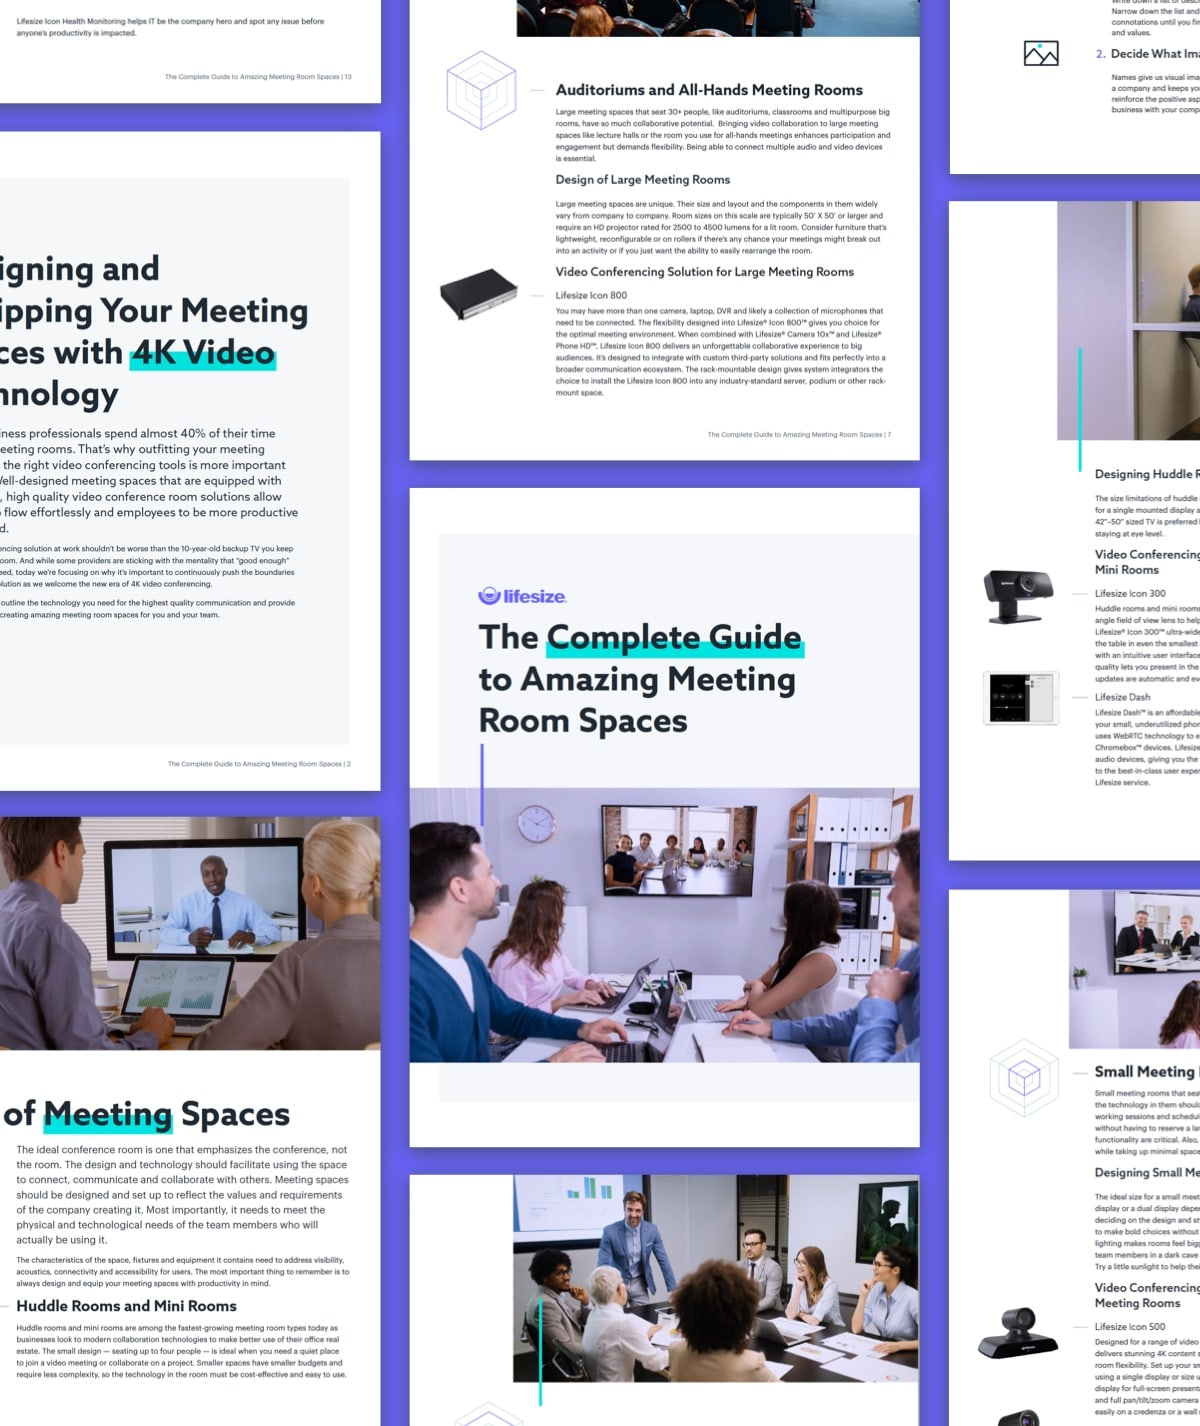 Snapshot of Lifesize's Amazing Meeting Room Spaces Guide.